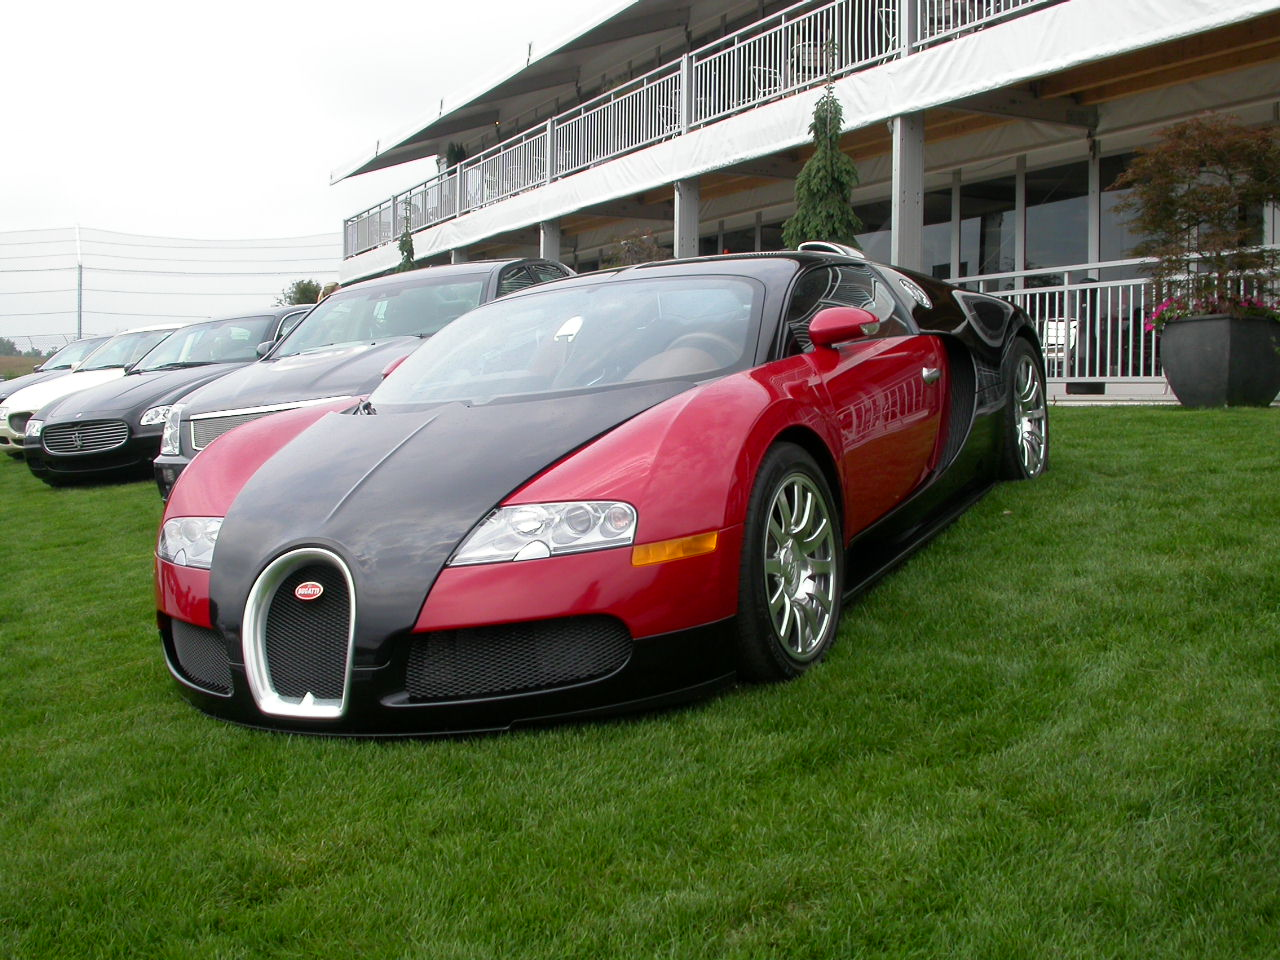 Bugatti Veyron at Monticello